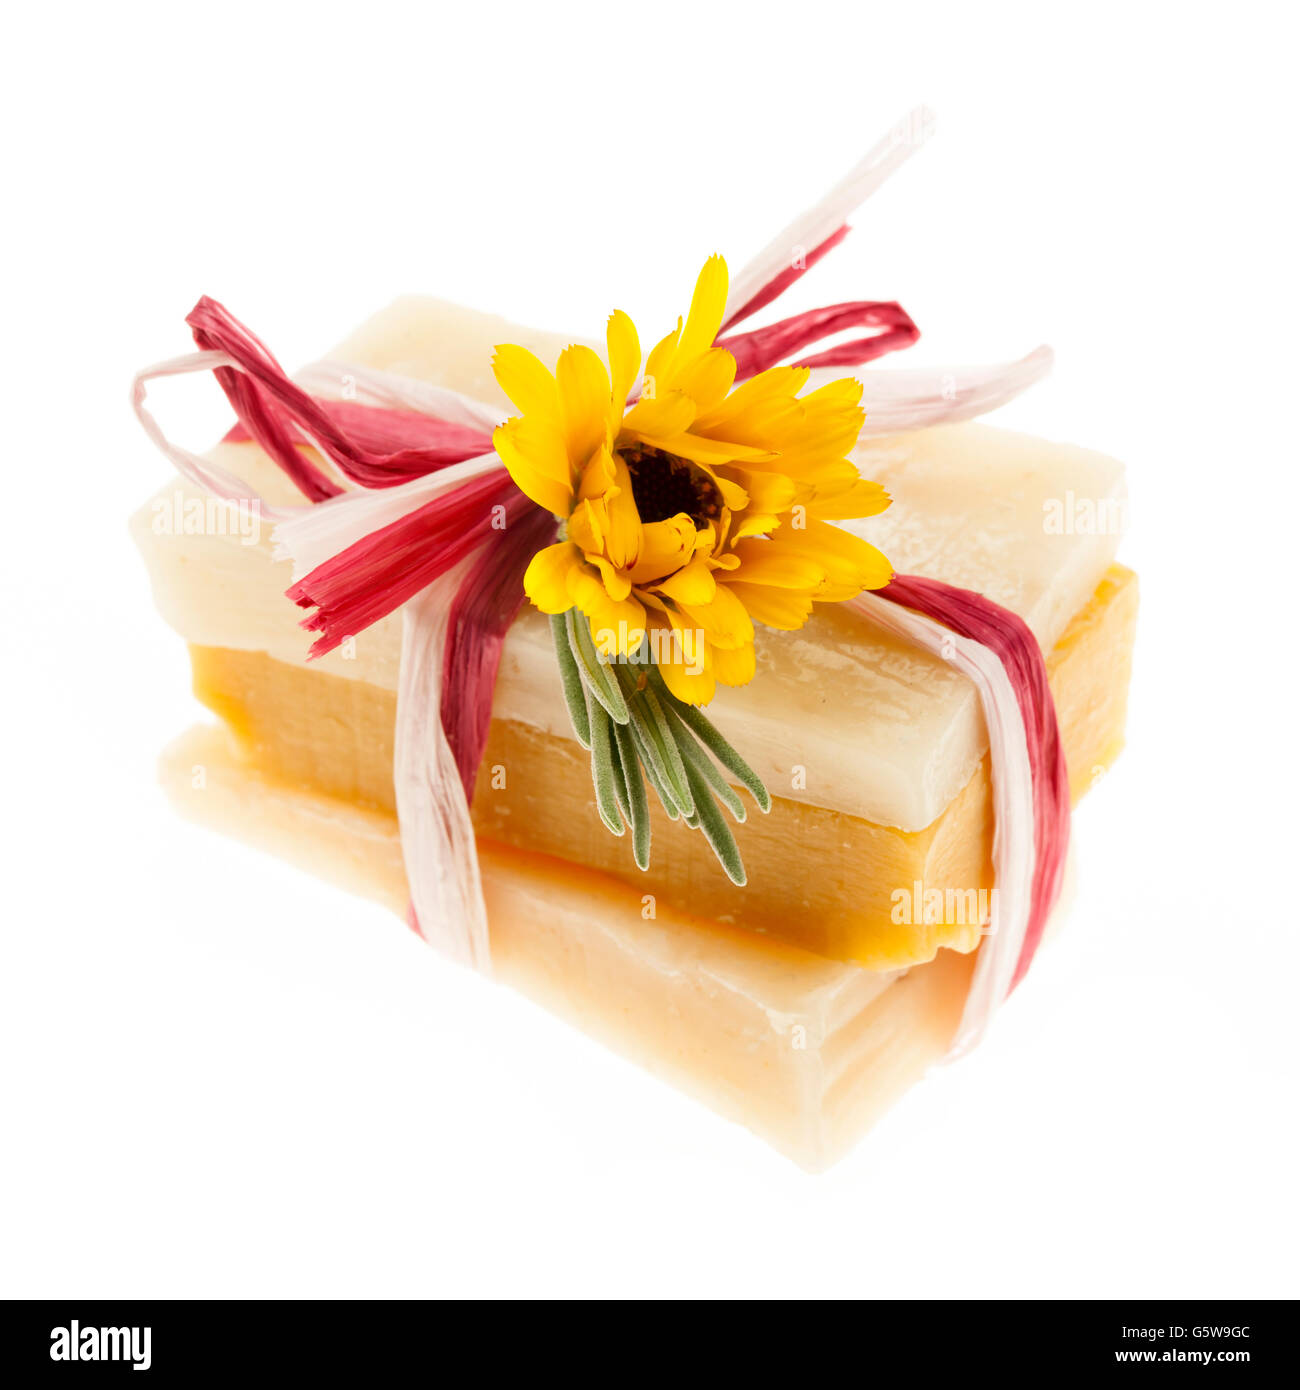 Several herbal handmade artisan soap pieces tied with fresh flowers isolated on white background - Stock Image